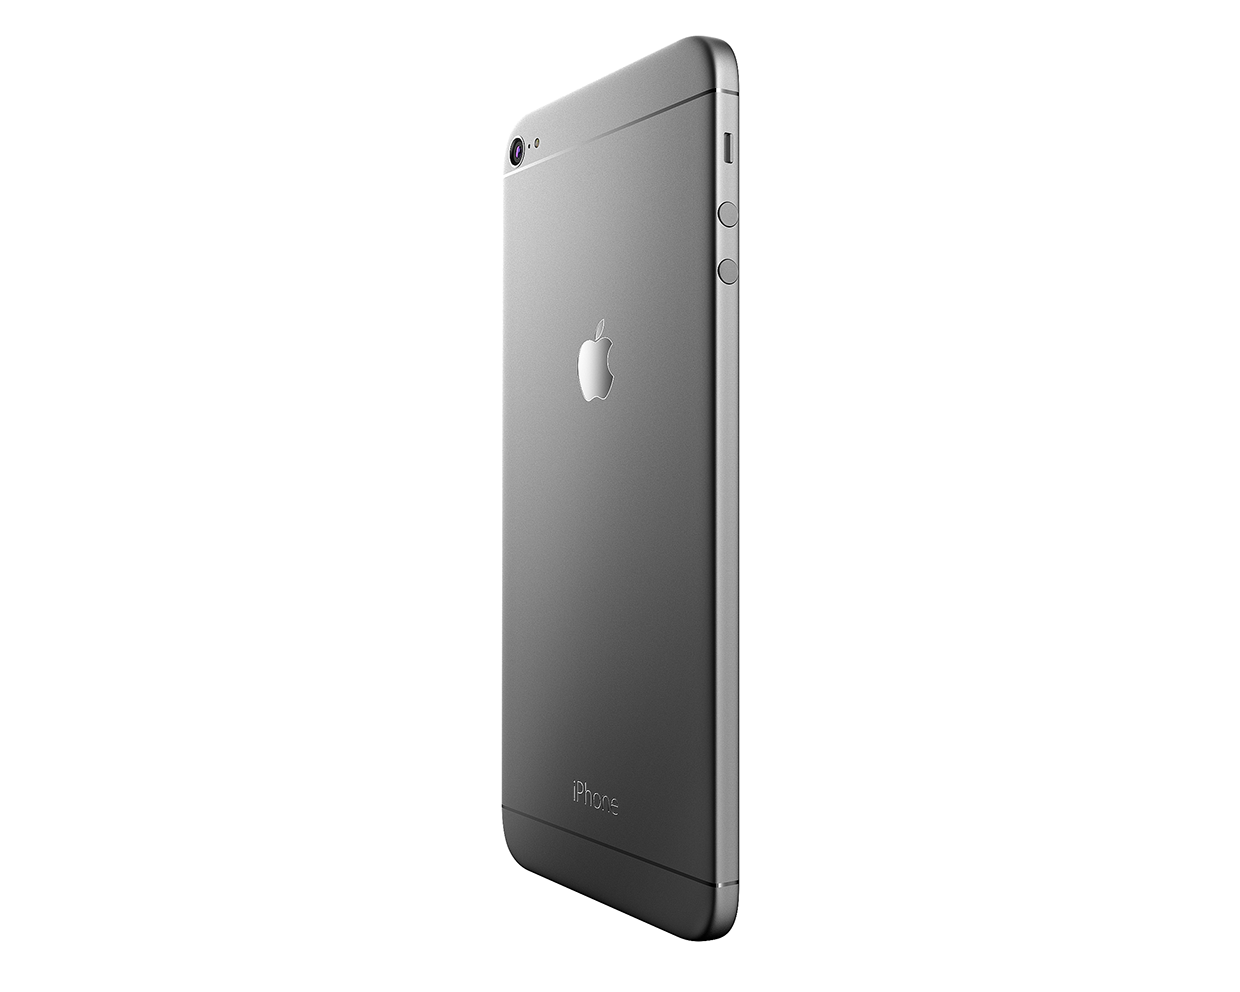 New iPhone 7 Concept Is Based On All Rumored Features, Looks Gorgeous!  New iPhone 7 Co...